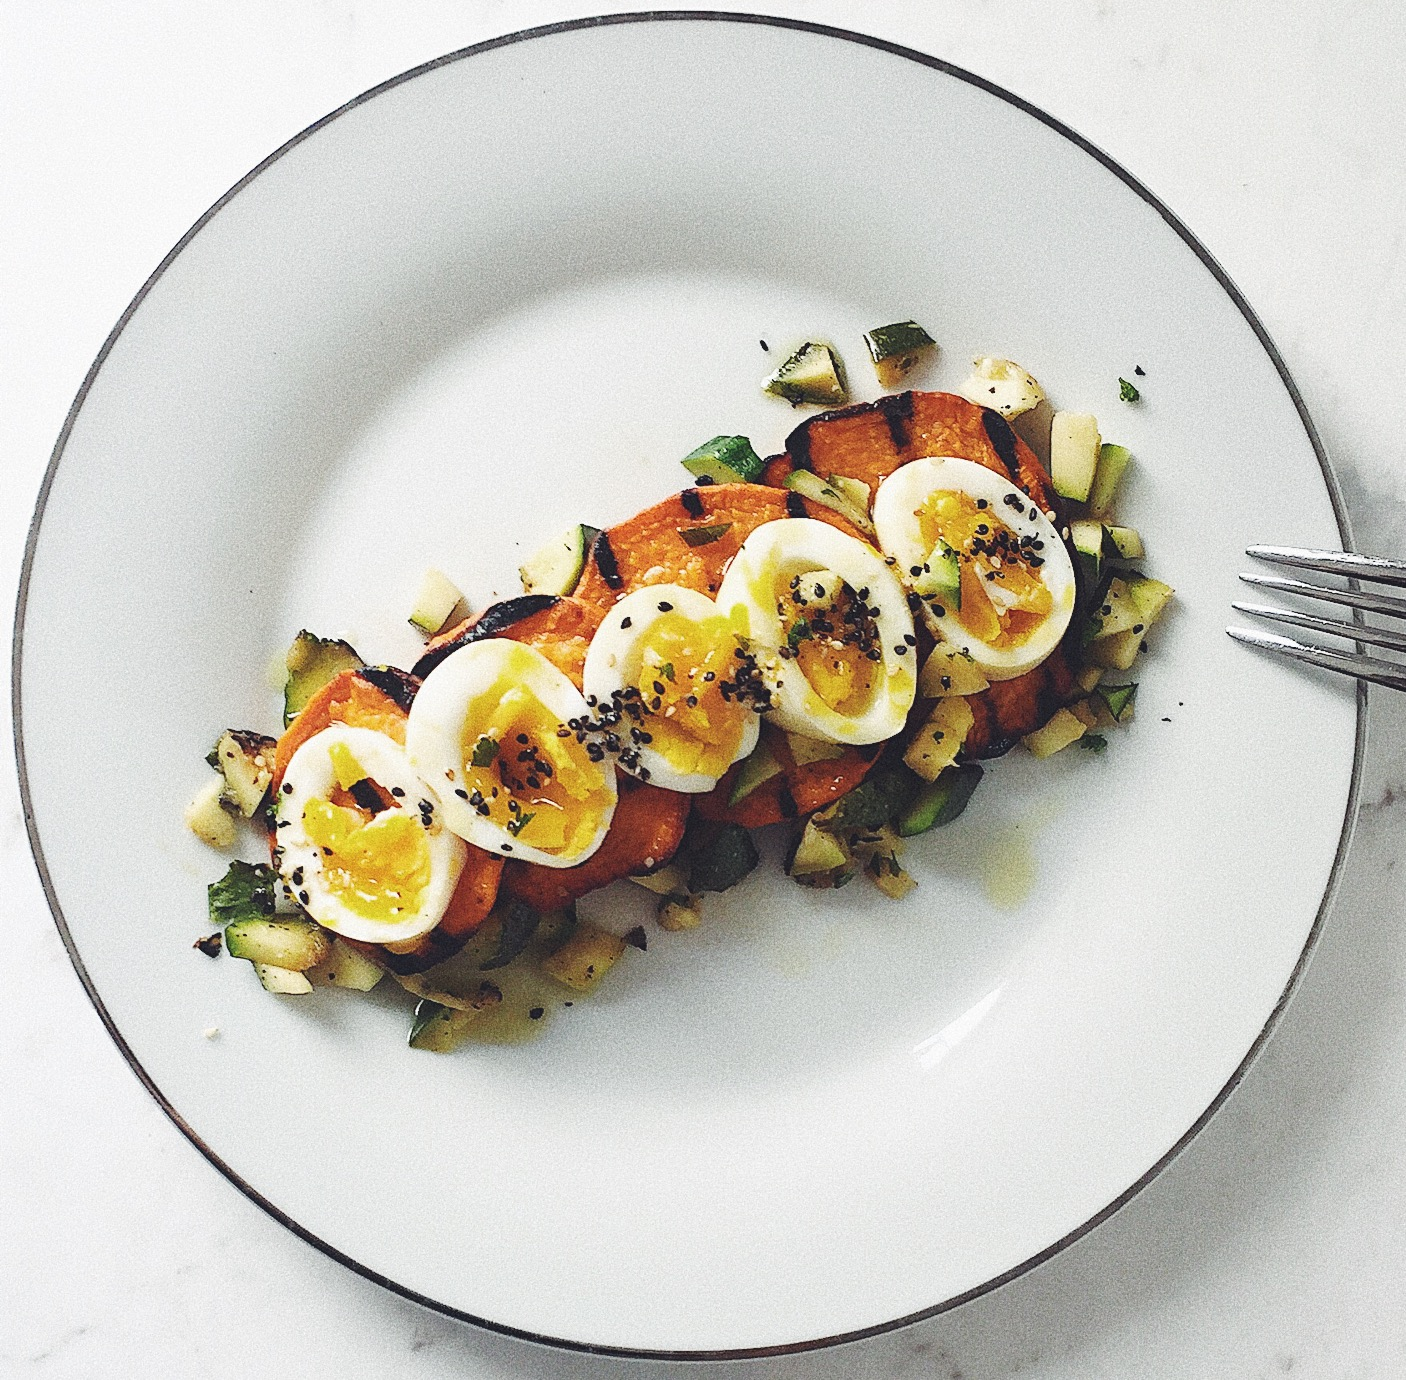 Eat this at anytime of the day for a minimal, heartwarming dish. -